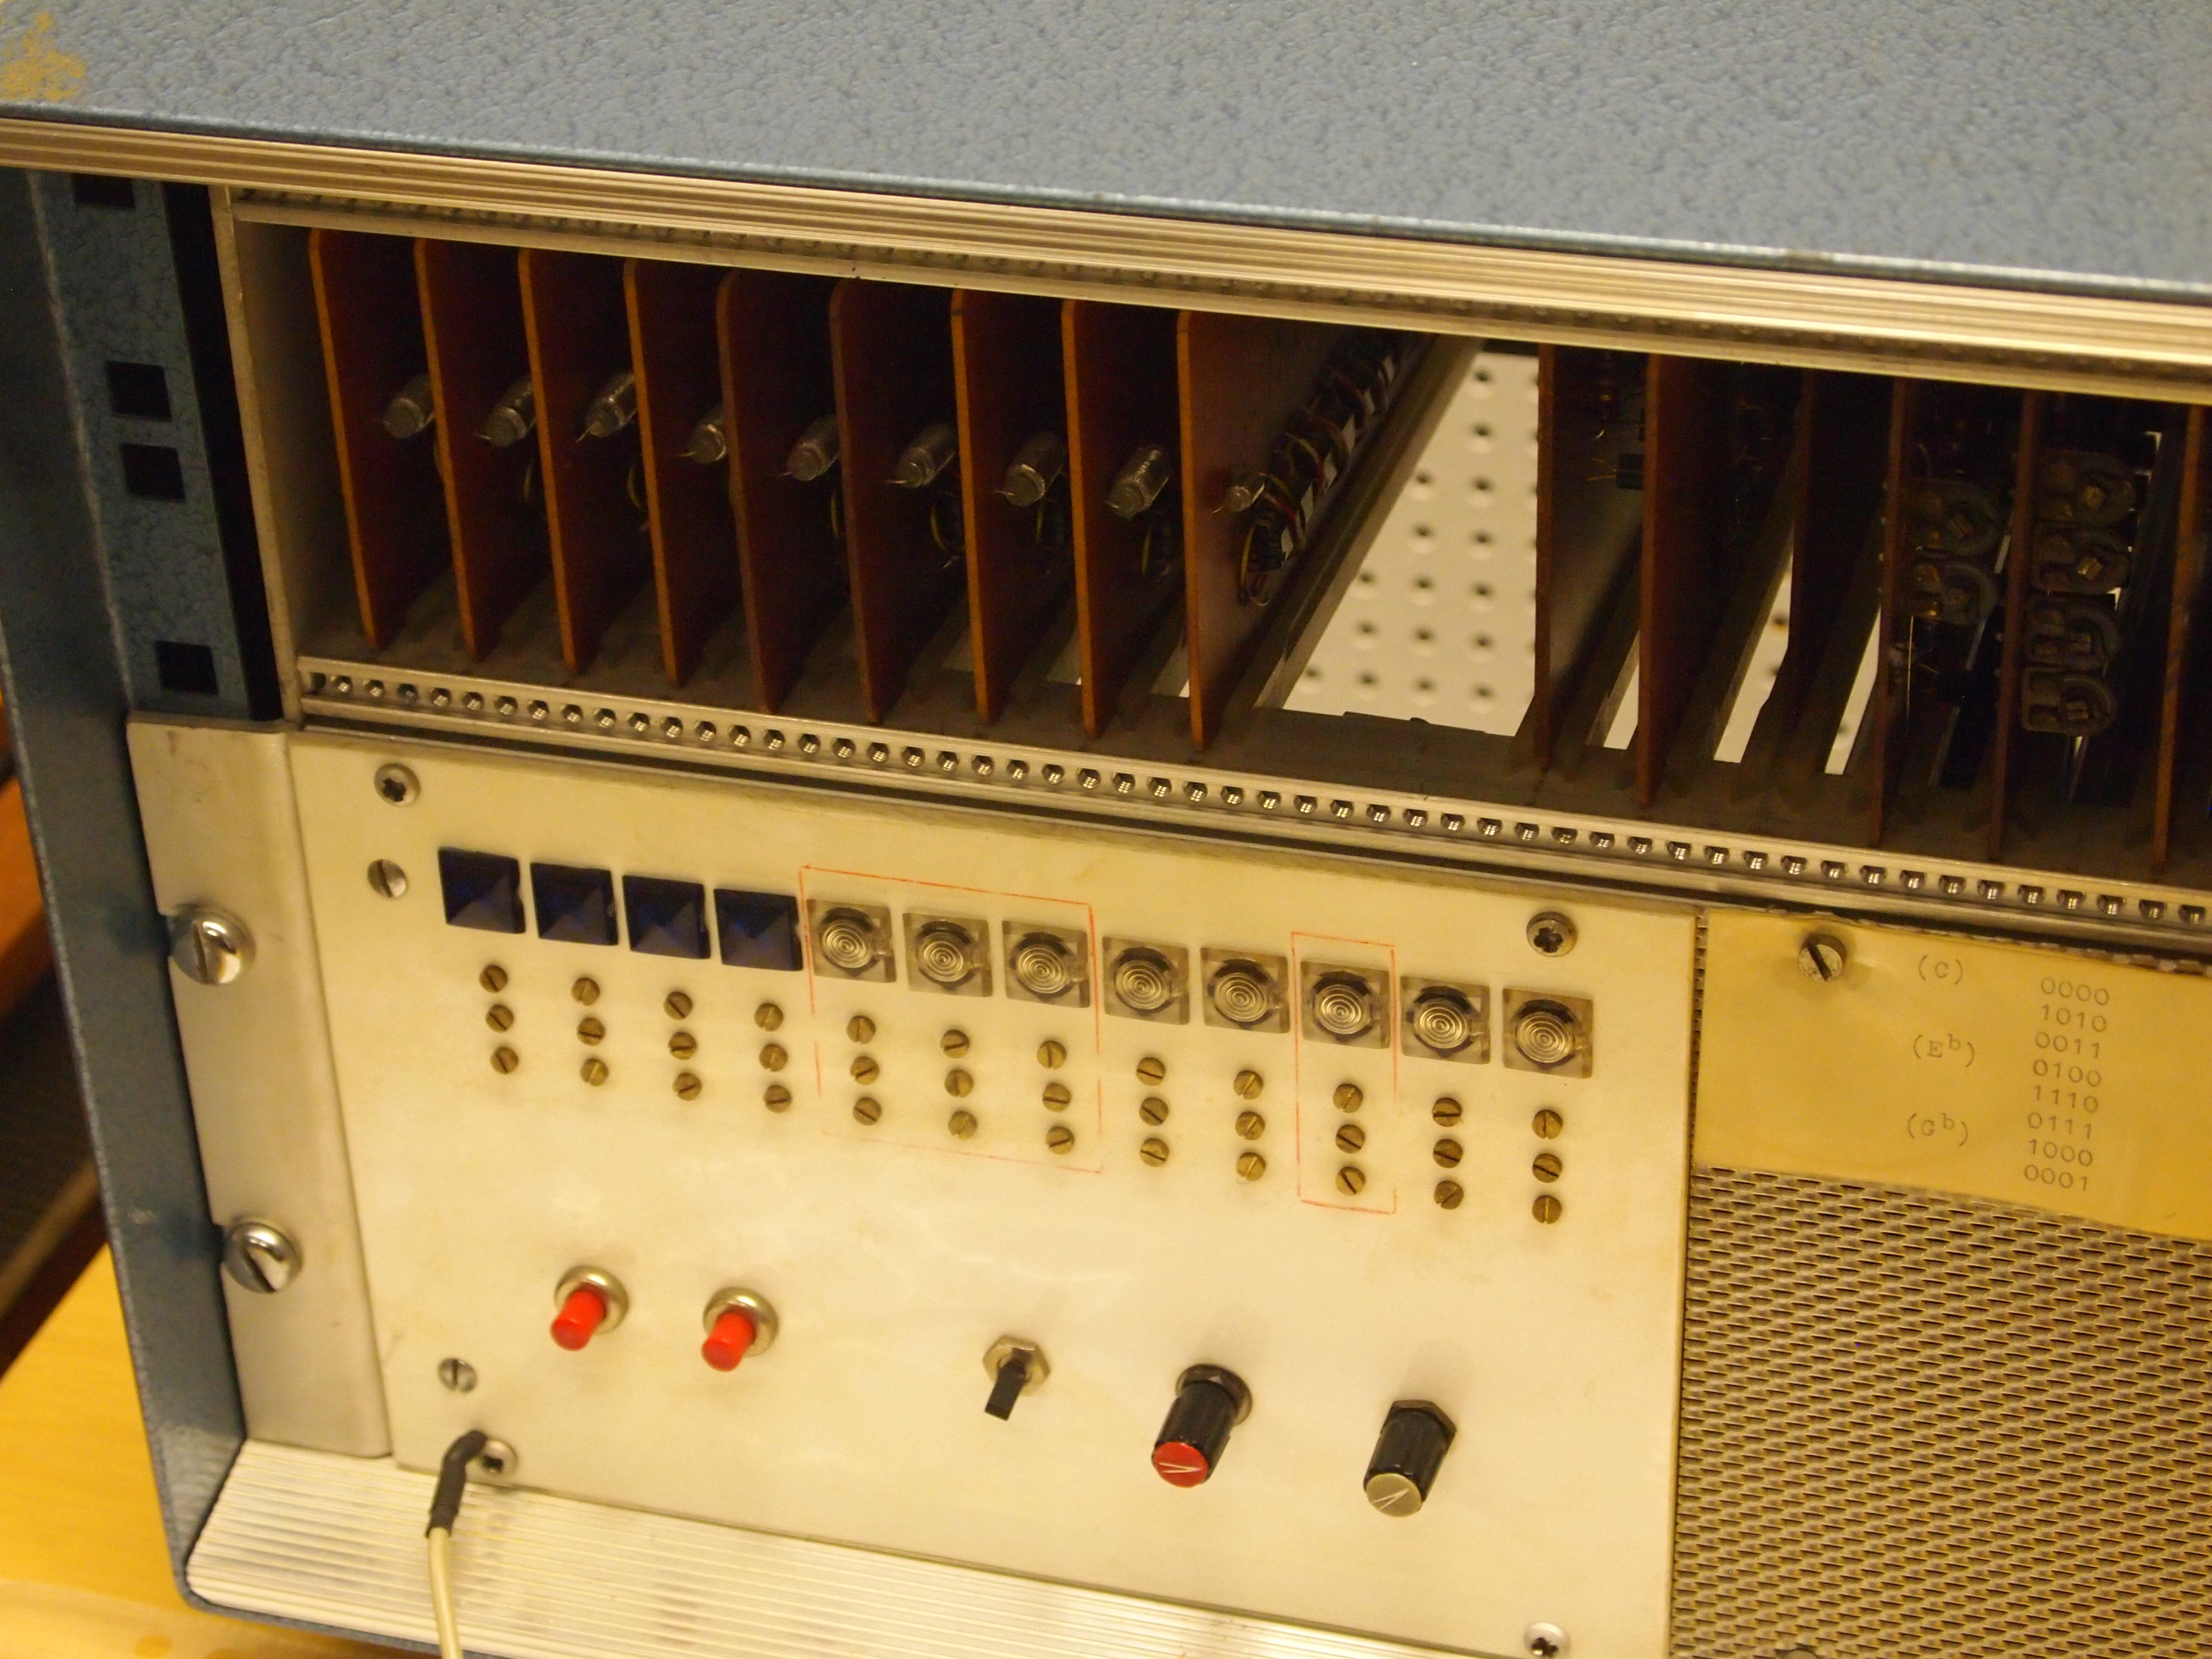 Kurenniemi Sequencer Synthesizer from the 1970s